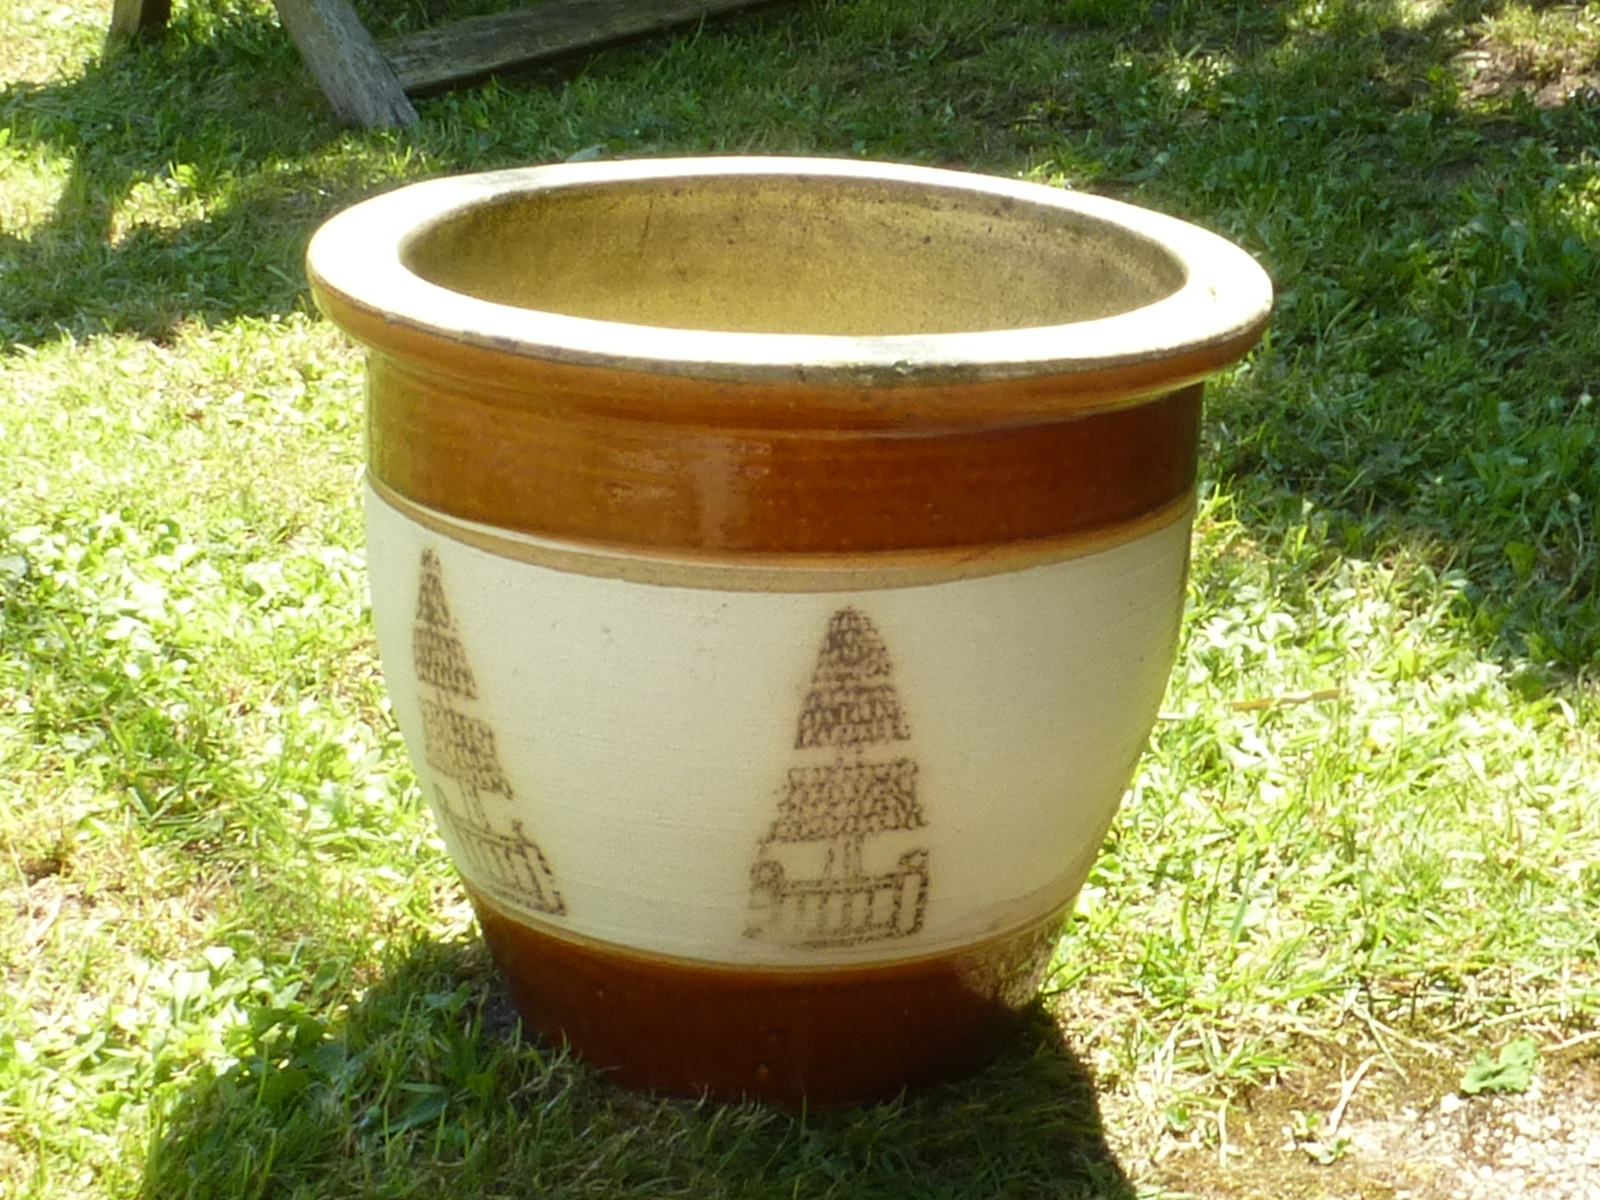 Redruth Cornwall Garden planters garden pot used pre-owned secondhand